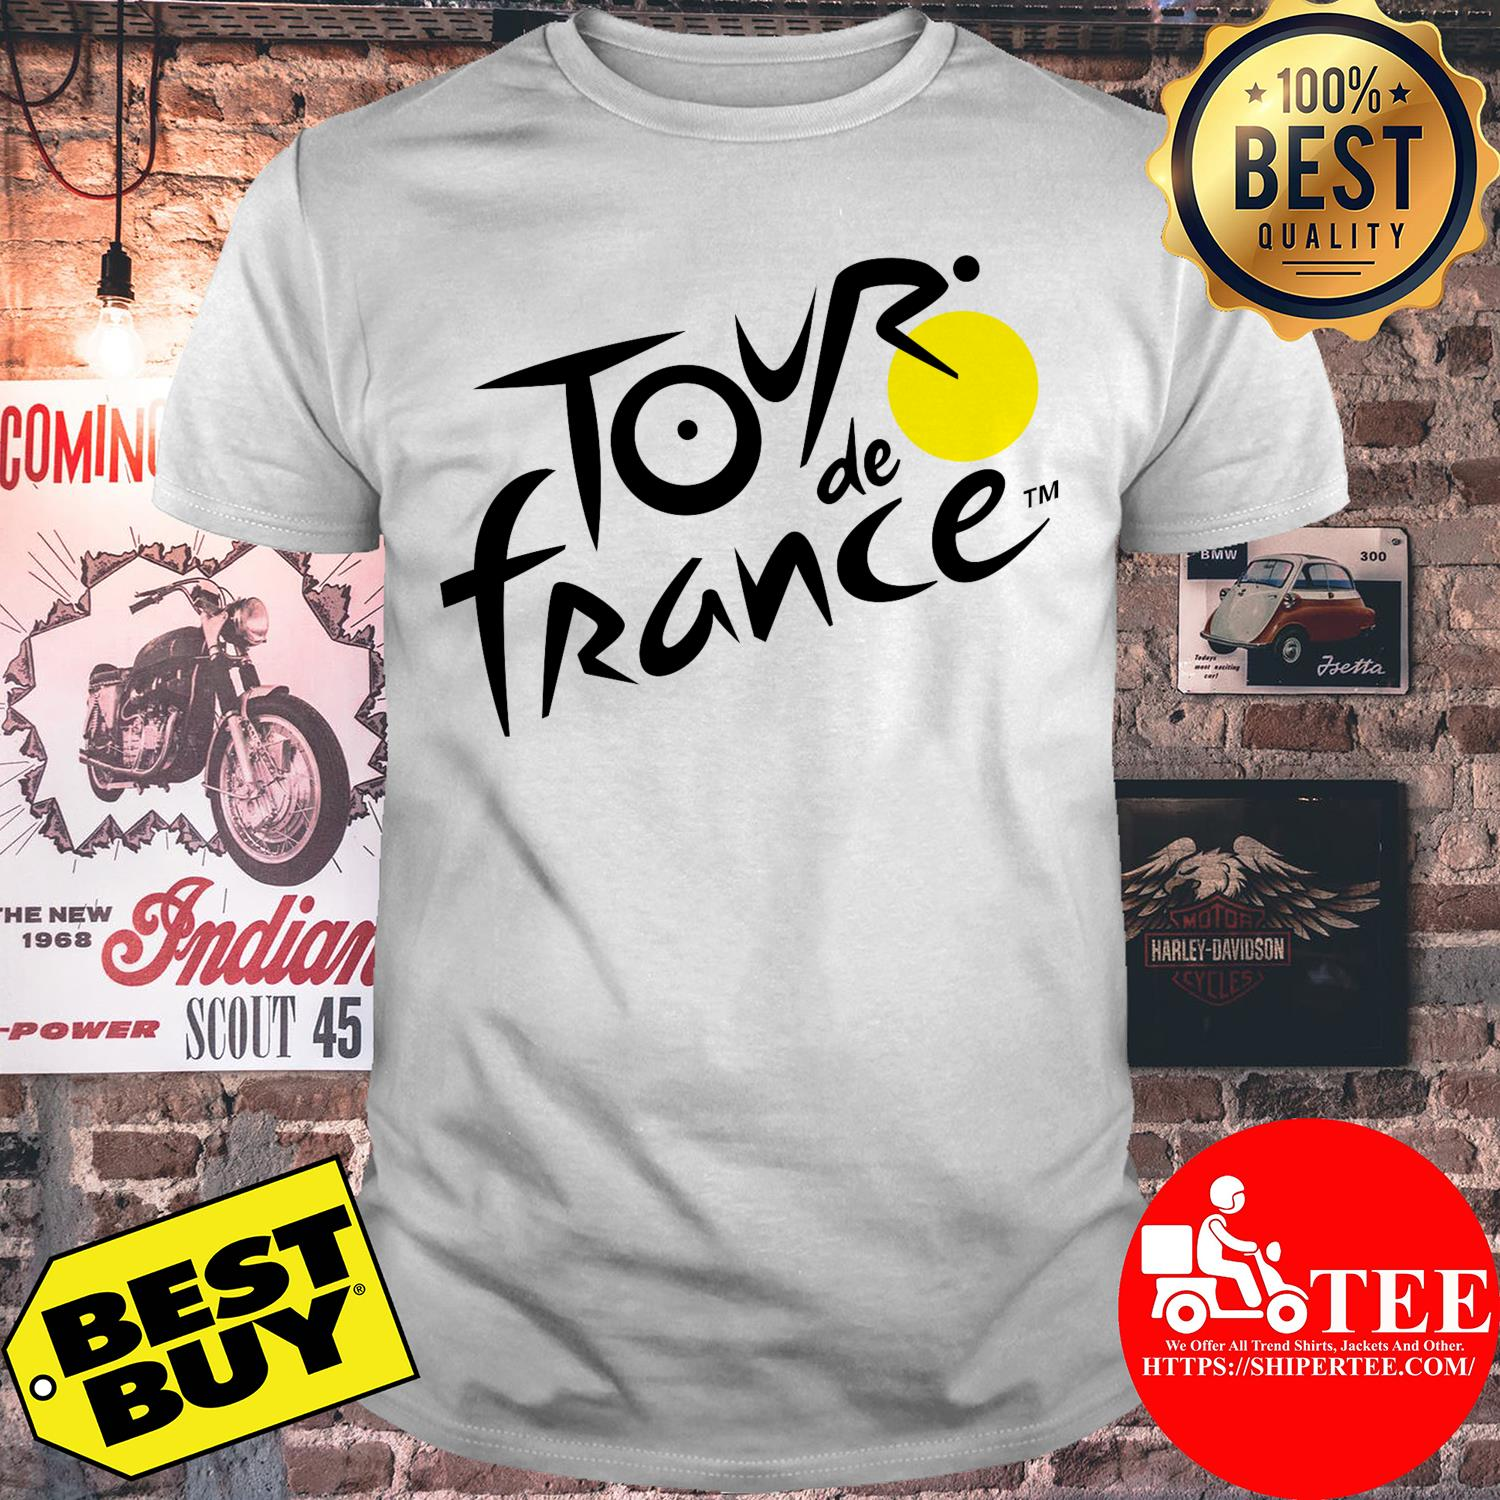 Official logo of Le Tour de France shirt